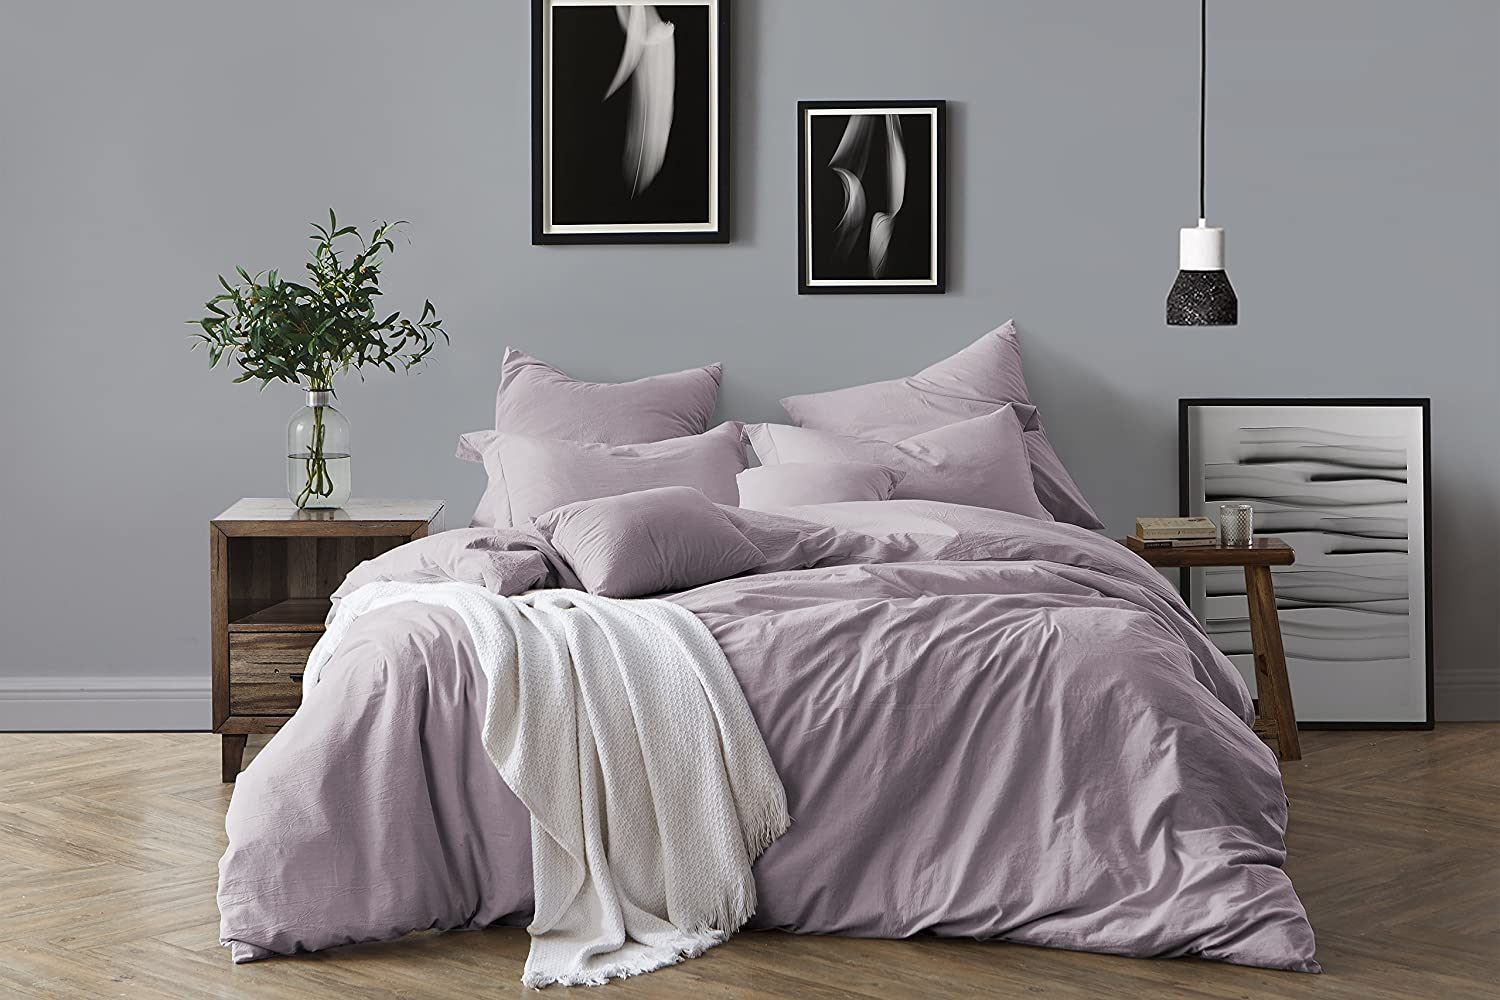 Swift Home 100% Cotton Washed Yarn Dyed Chambray Duvet Cover & Sham Bedding Set